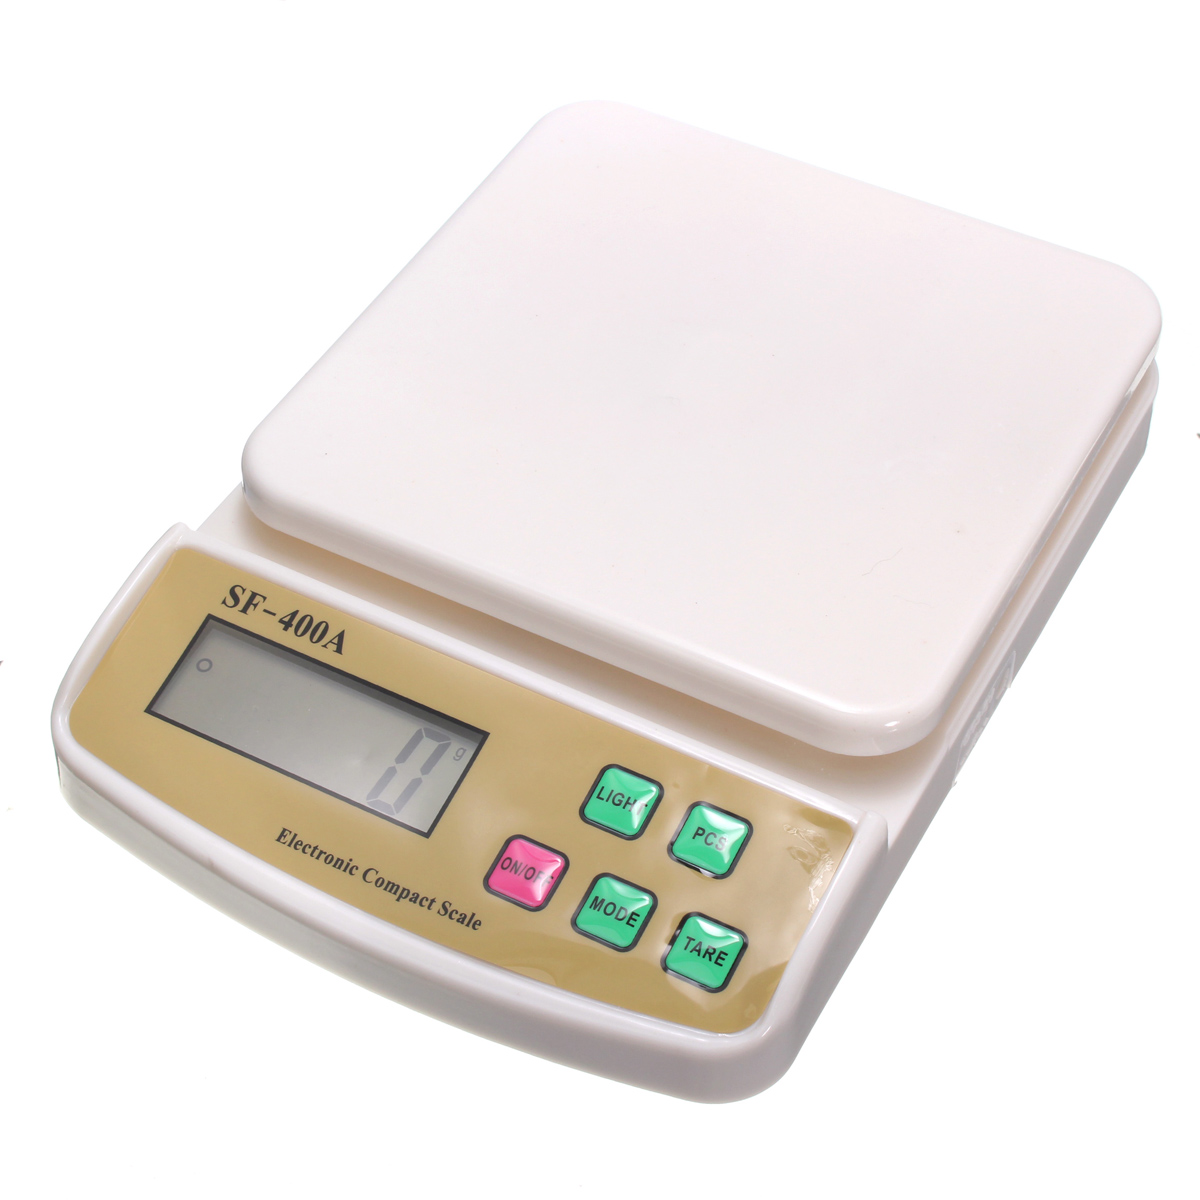 1pcs sf 400a digital scale for household use 10kg 1g for 0 1g kitchen scales